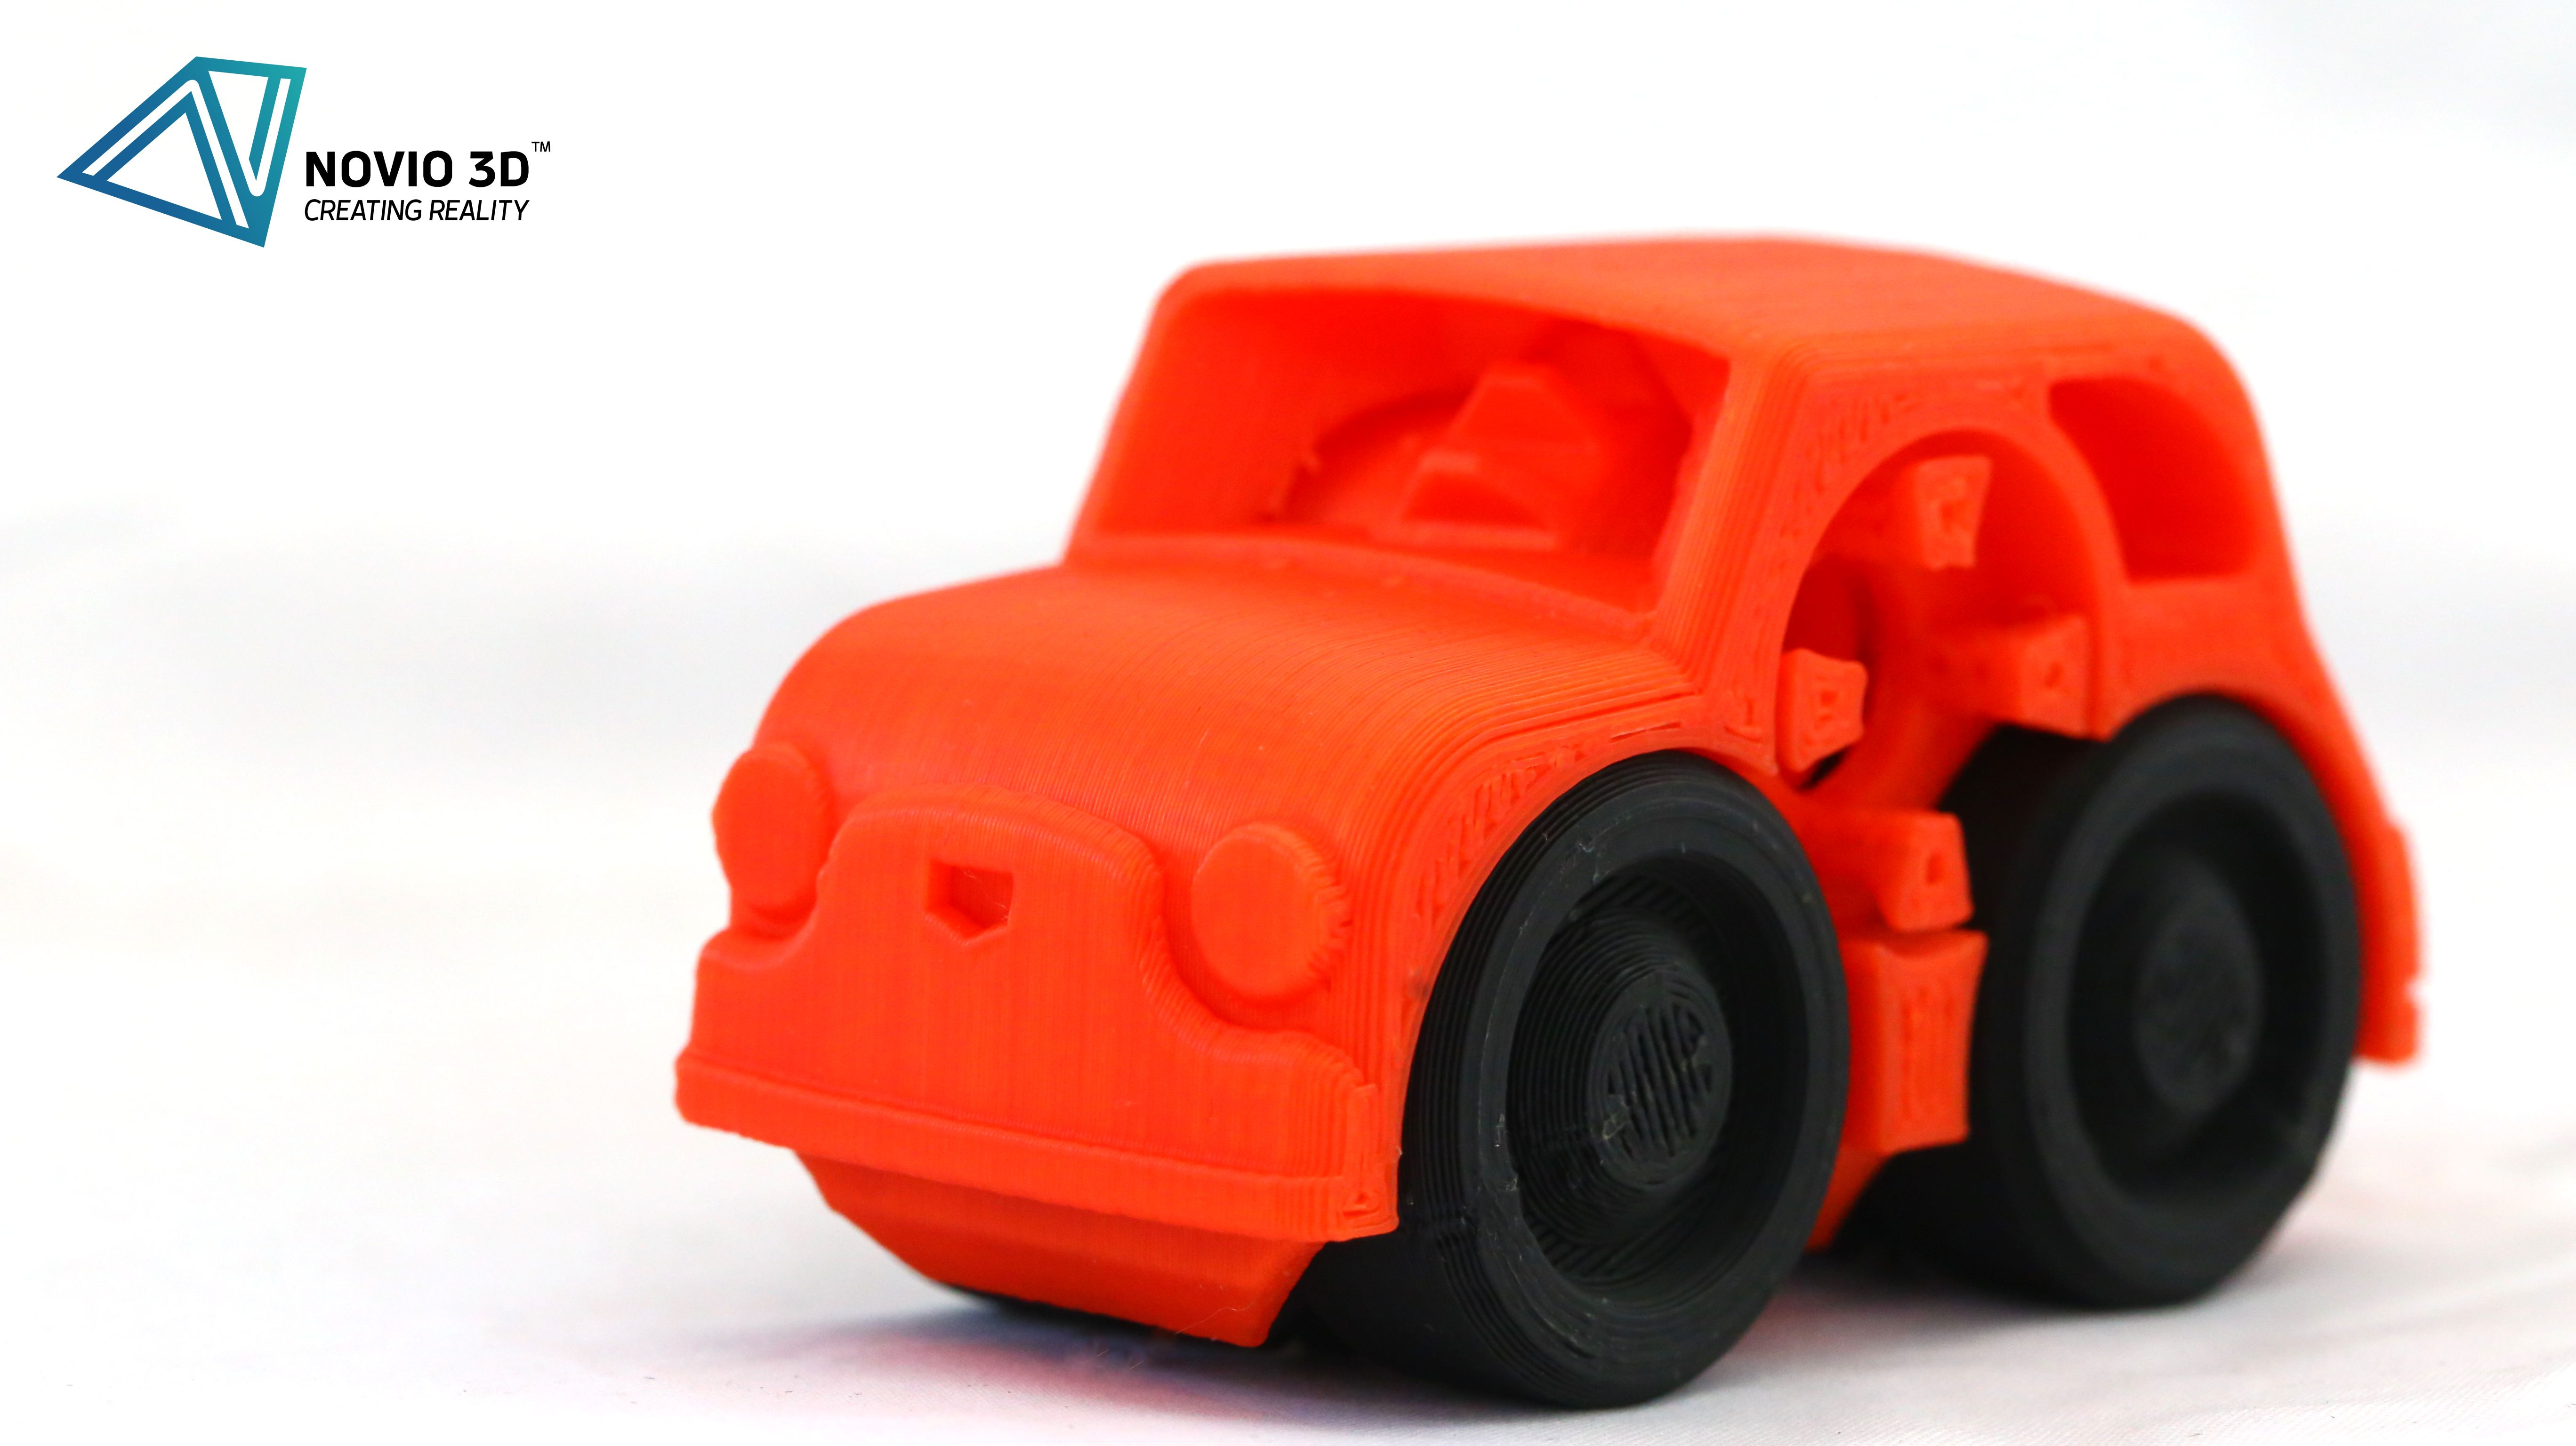 3d Printed Toy Car With Moving Wheels 3dprintedcar 3dprintedtoy